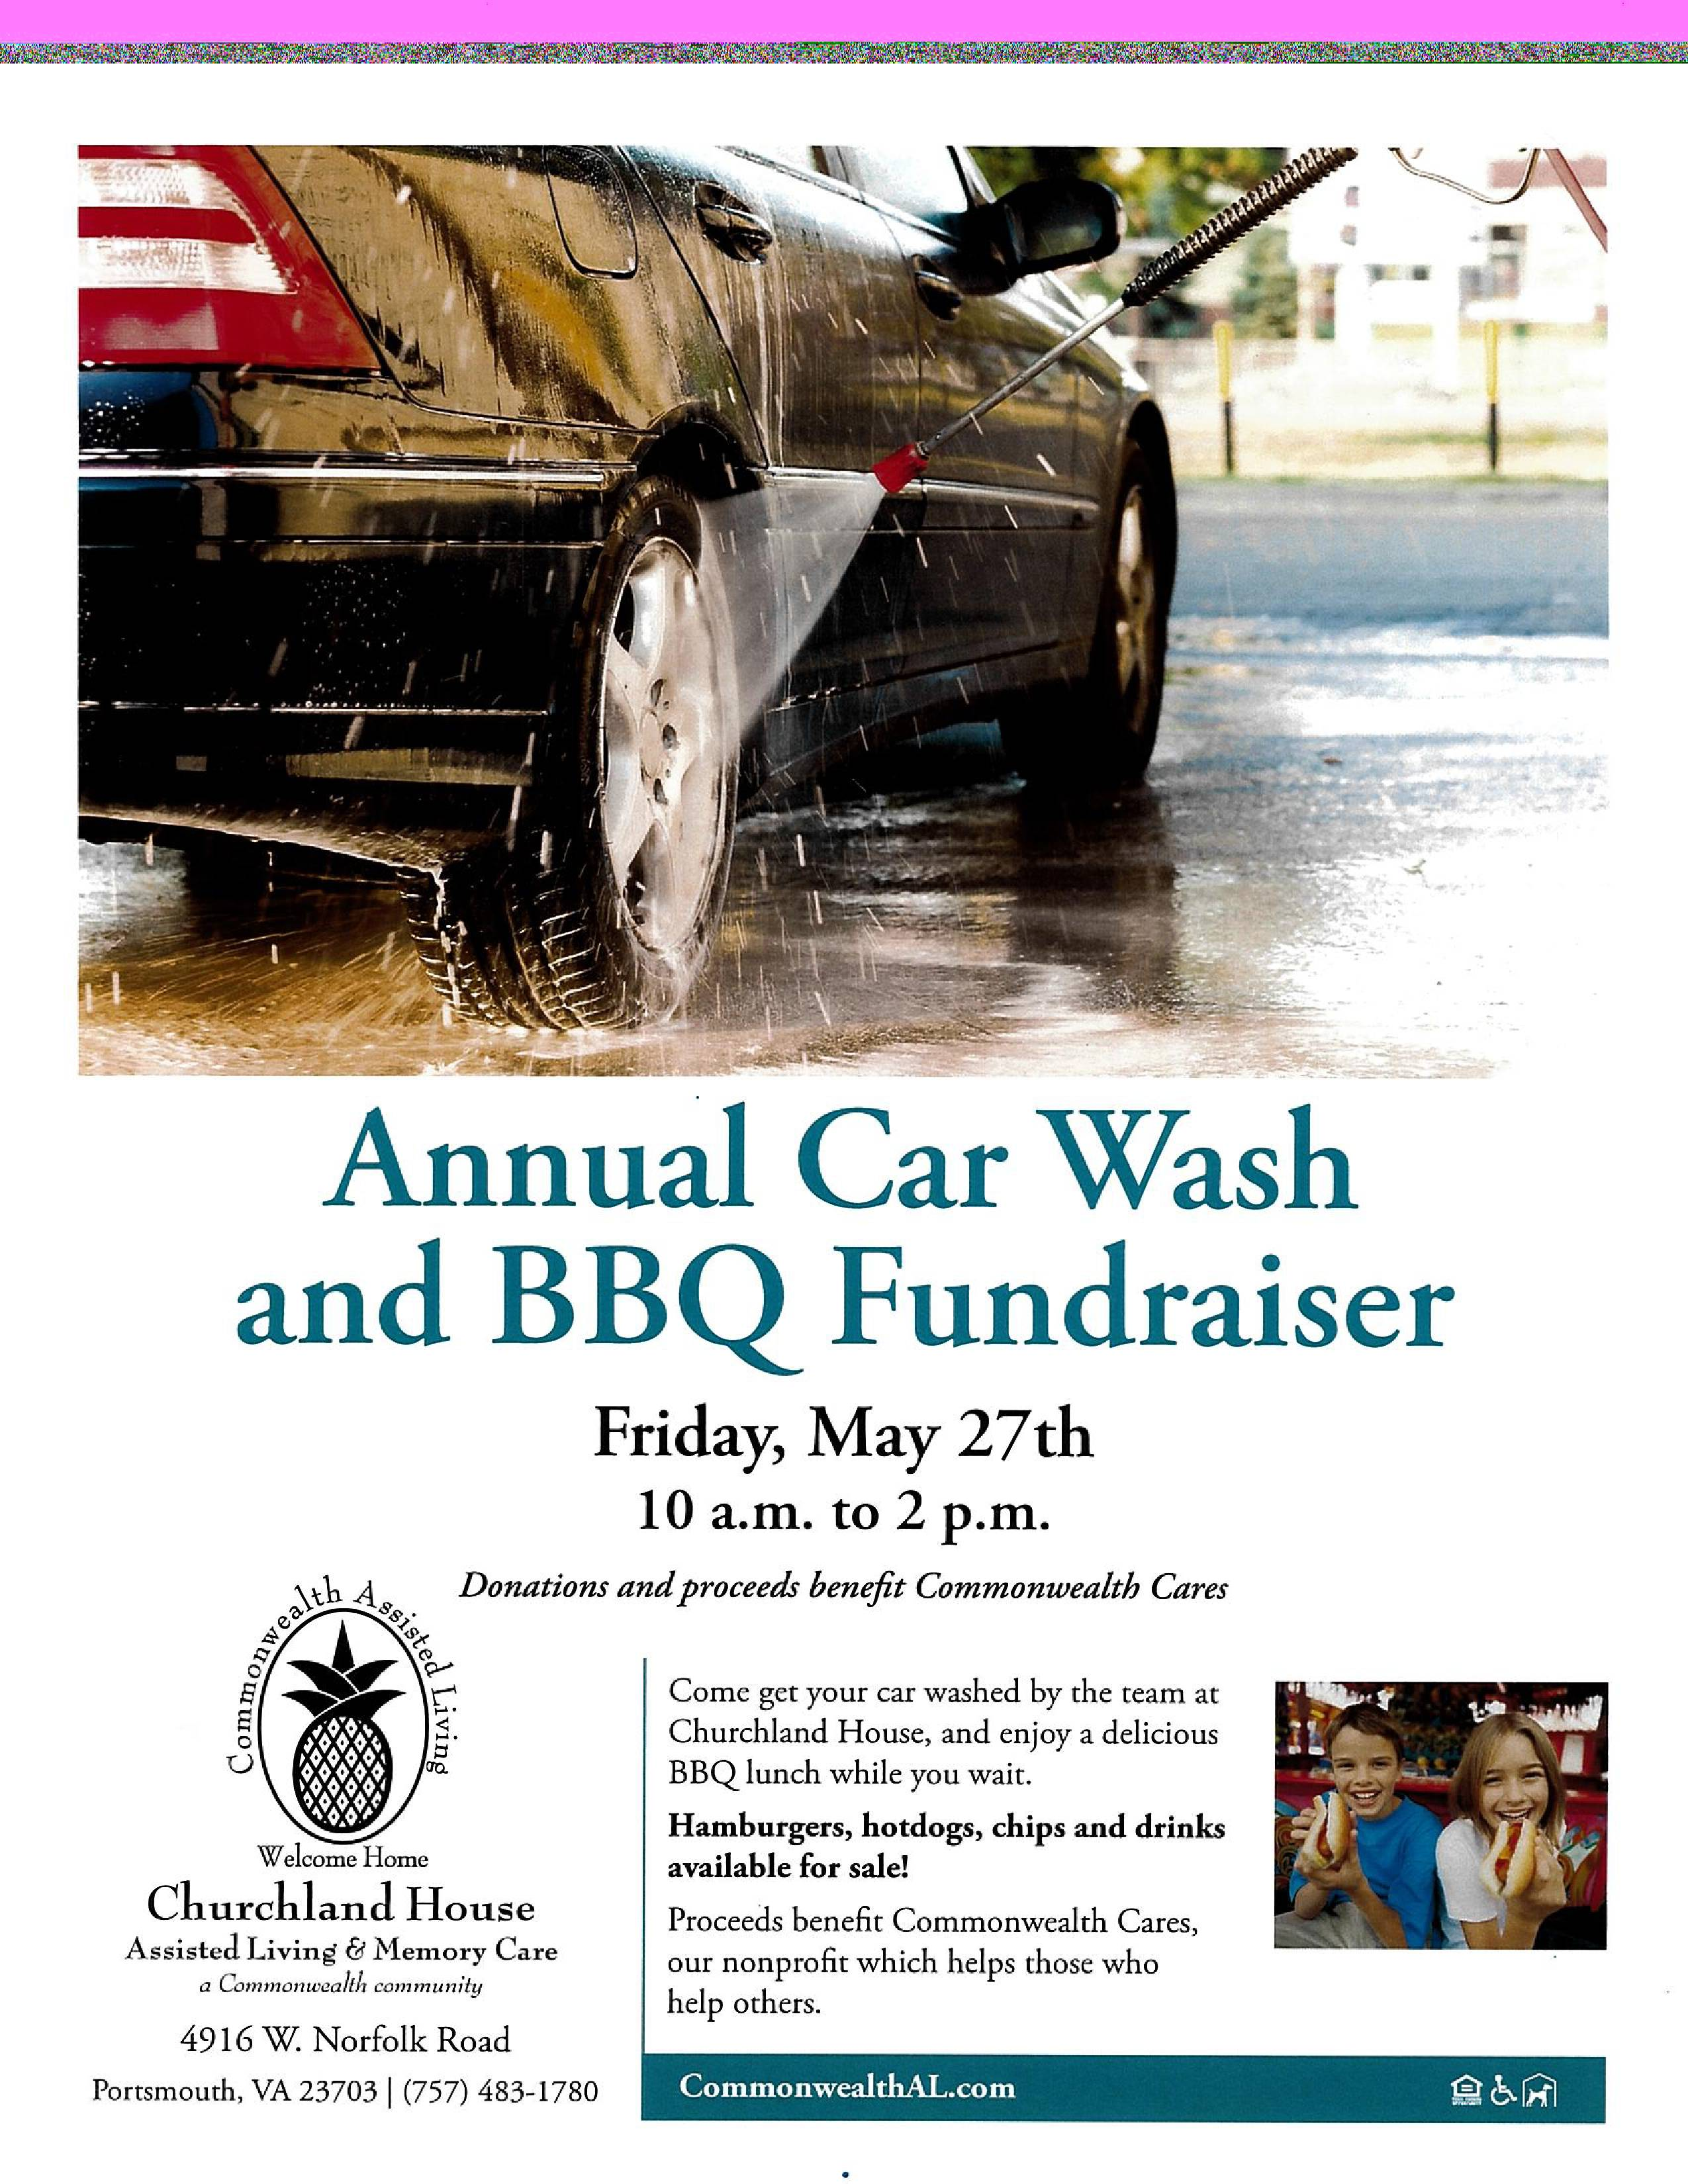 Annual Car Wash and BBQ Fundraiser